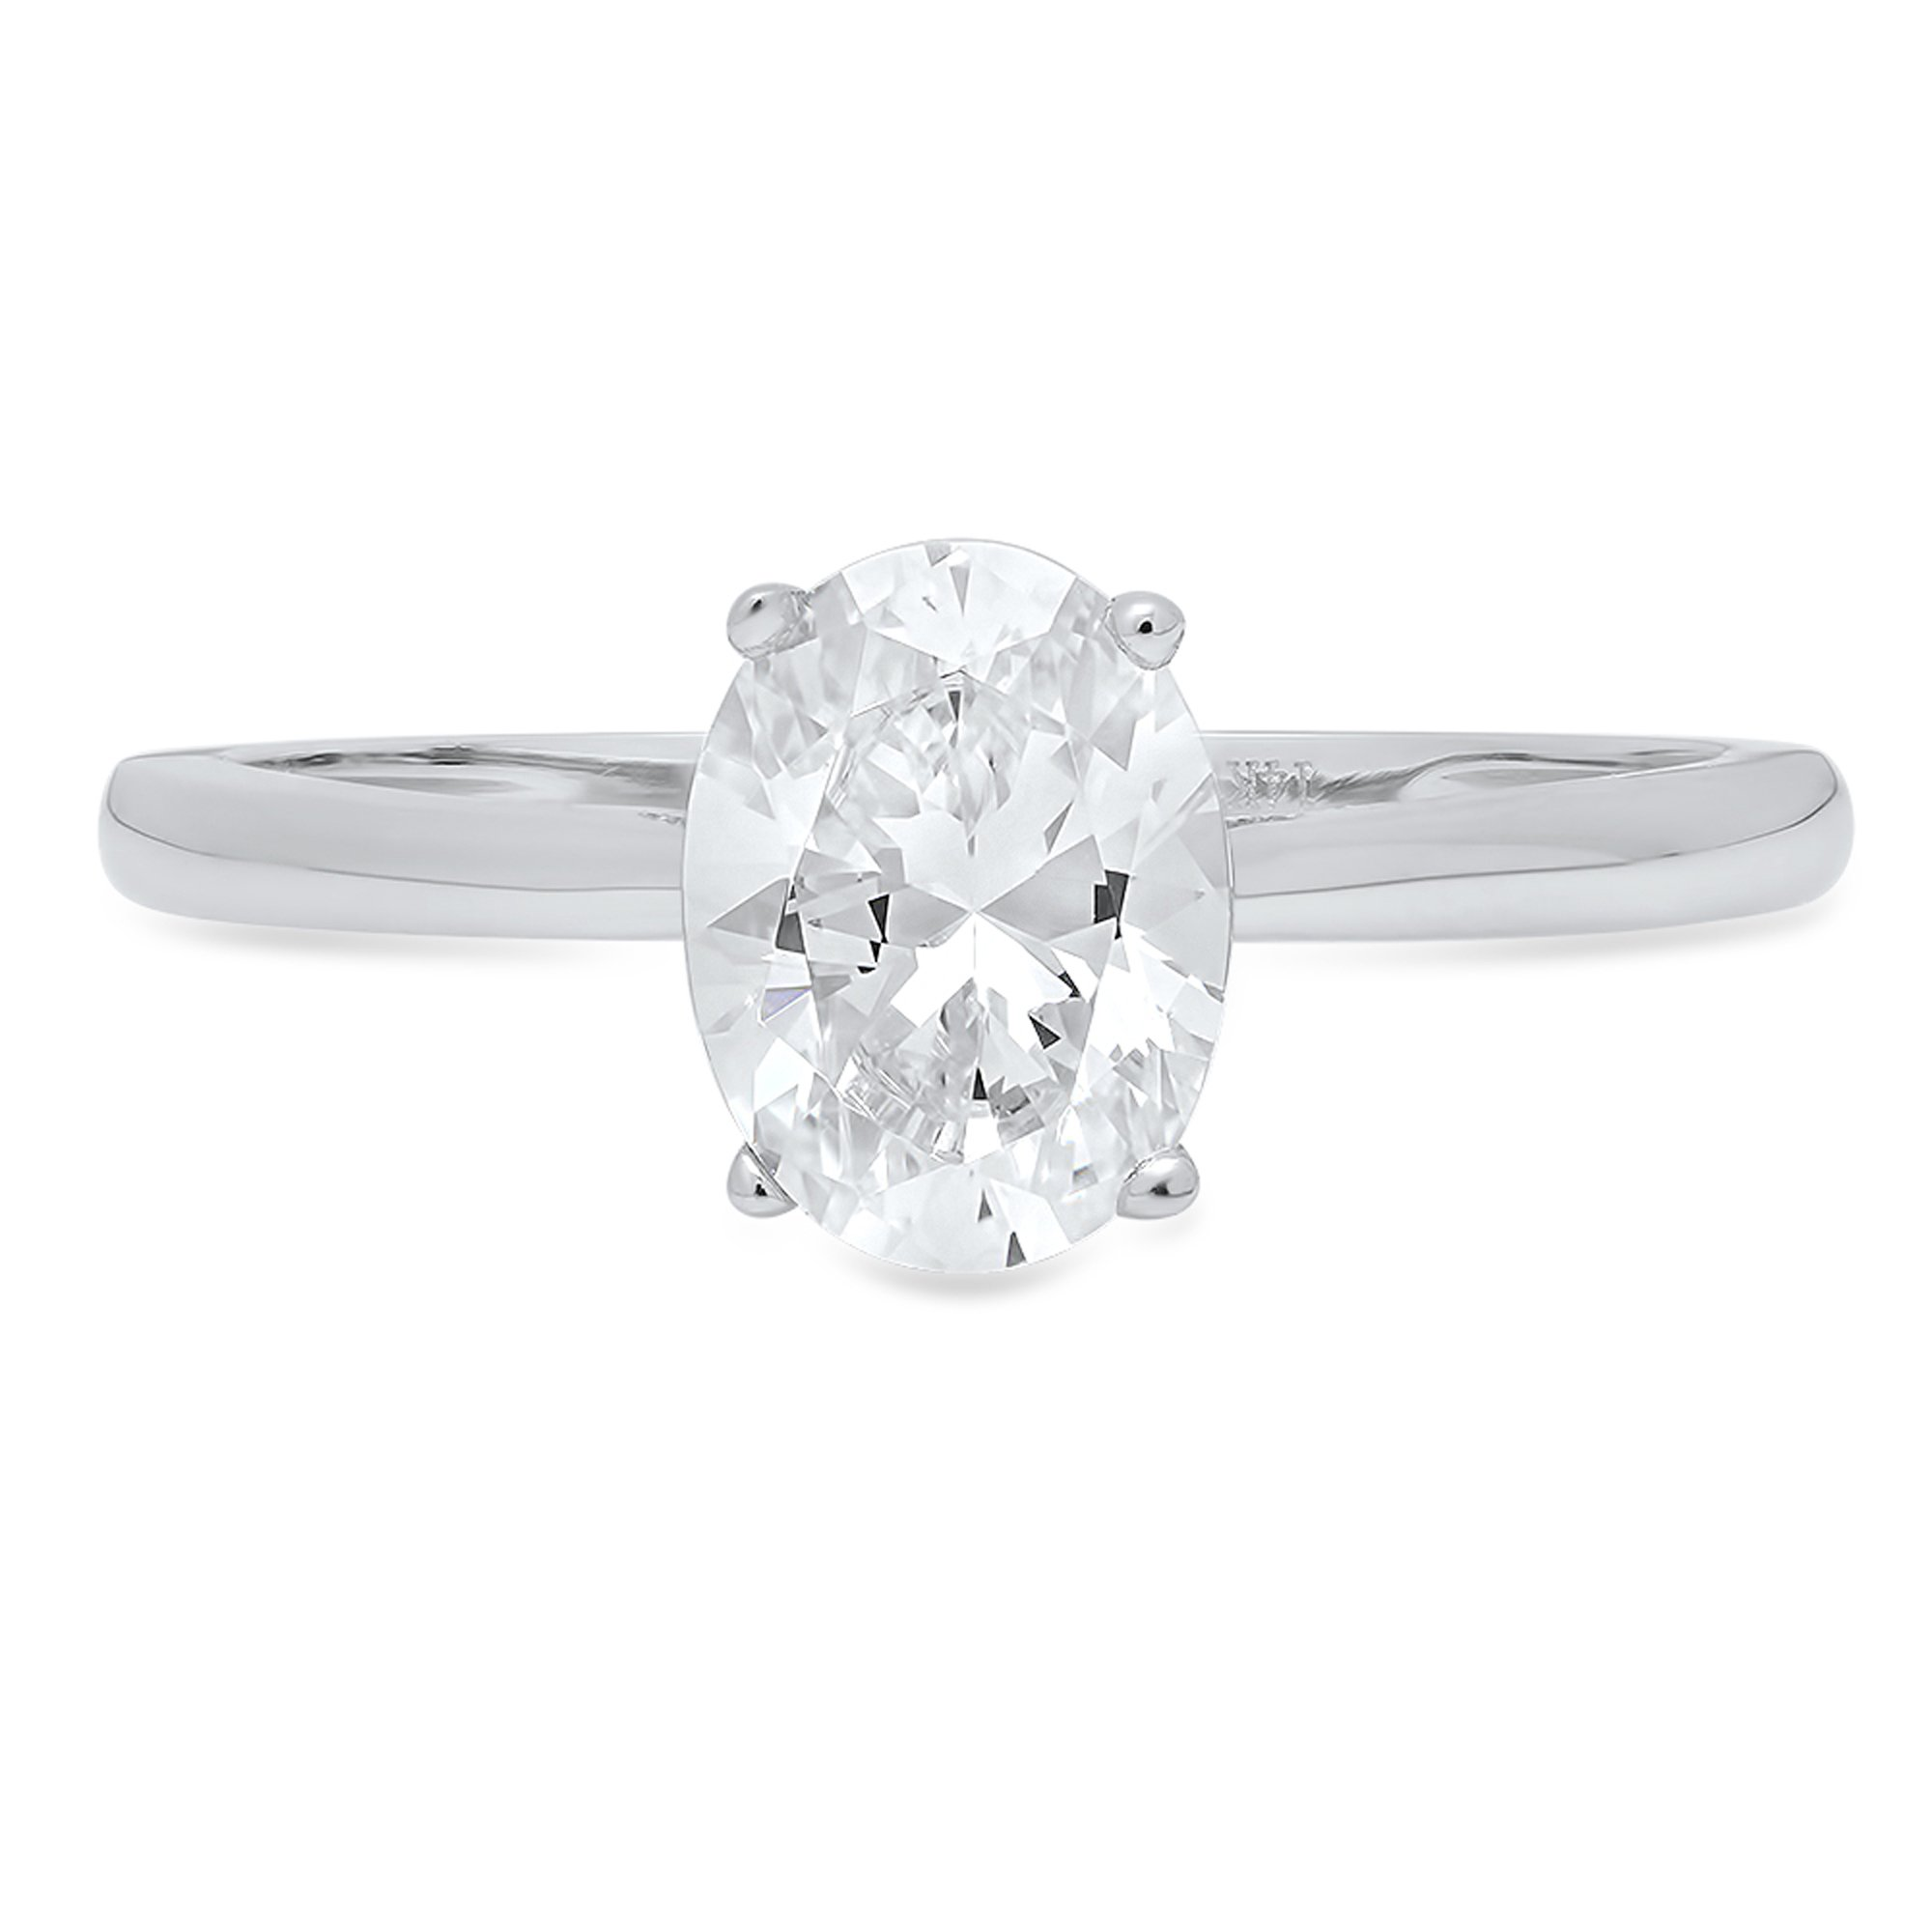 Clara Pucci Brilliant Oval Cut Solitaire Engagement Wedding Promise Bridal Ring in Solid 14k White Gold, 0.85CT, Size 8